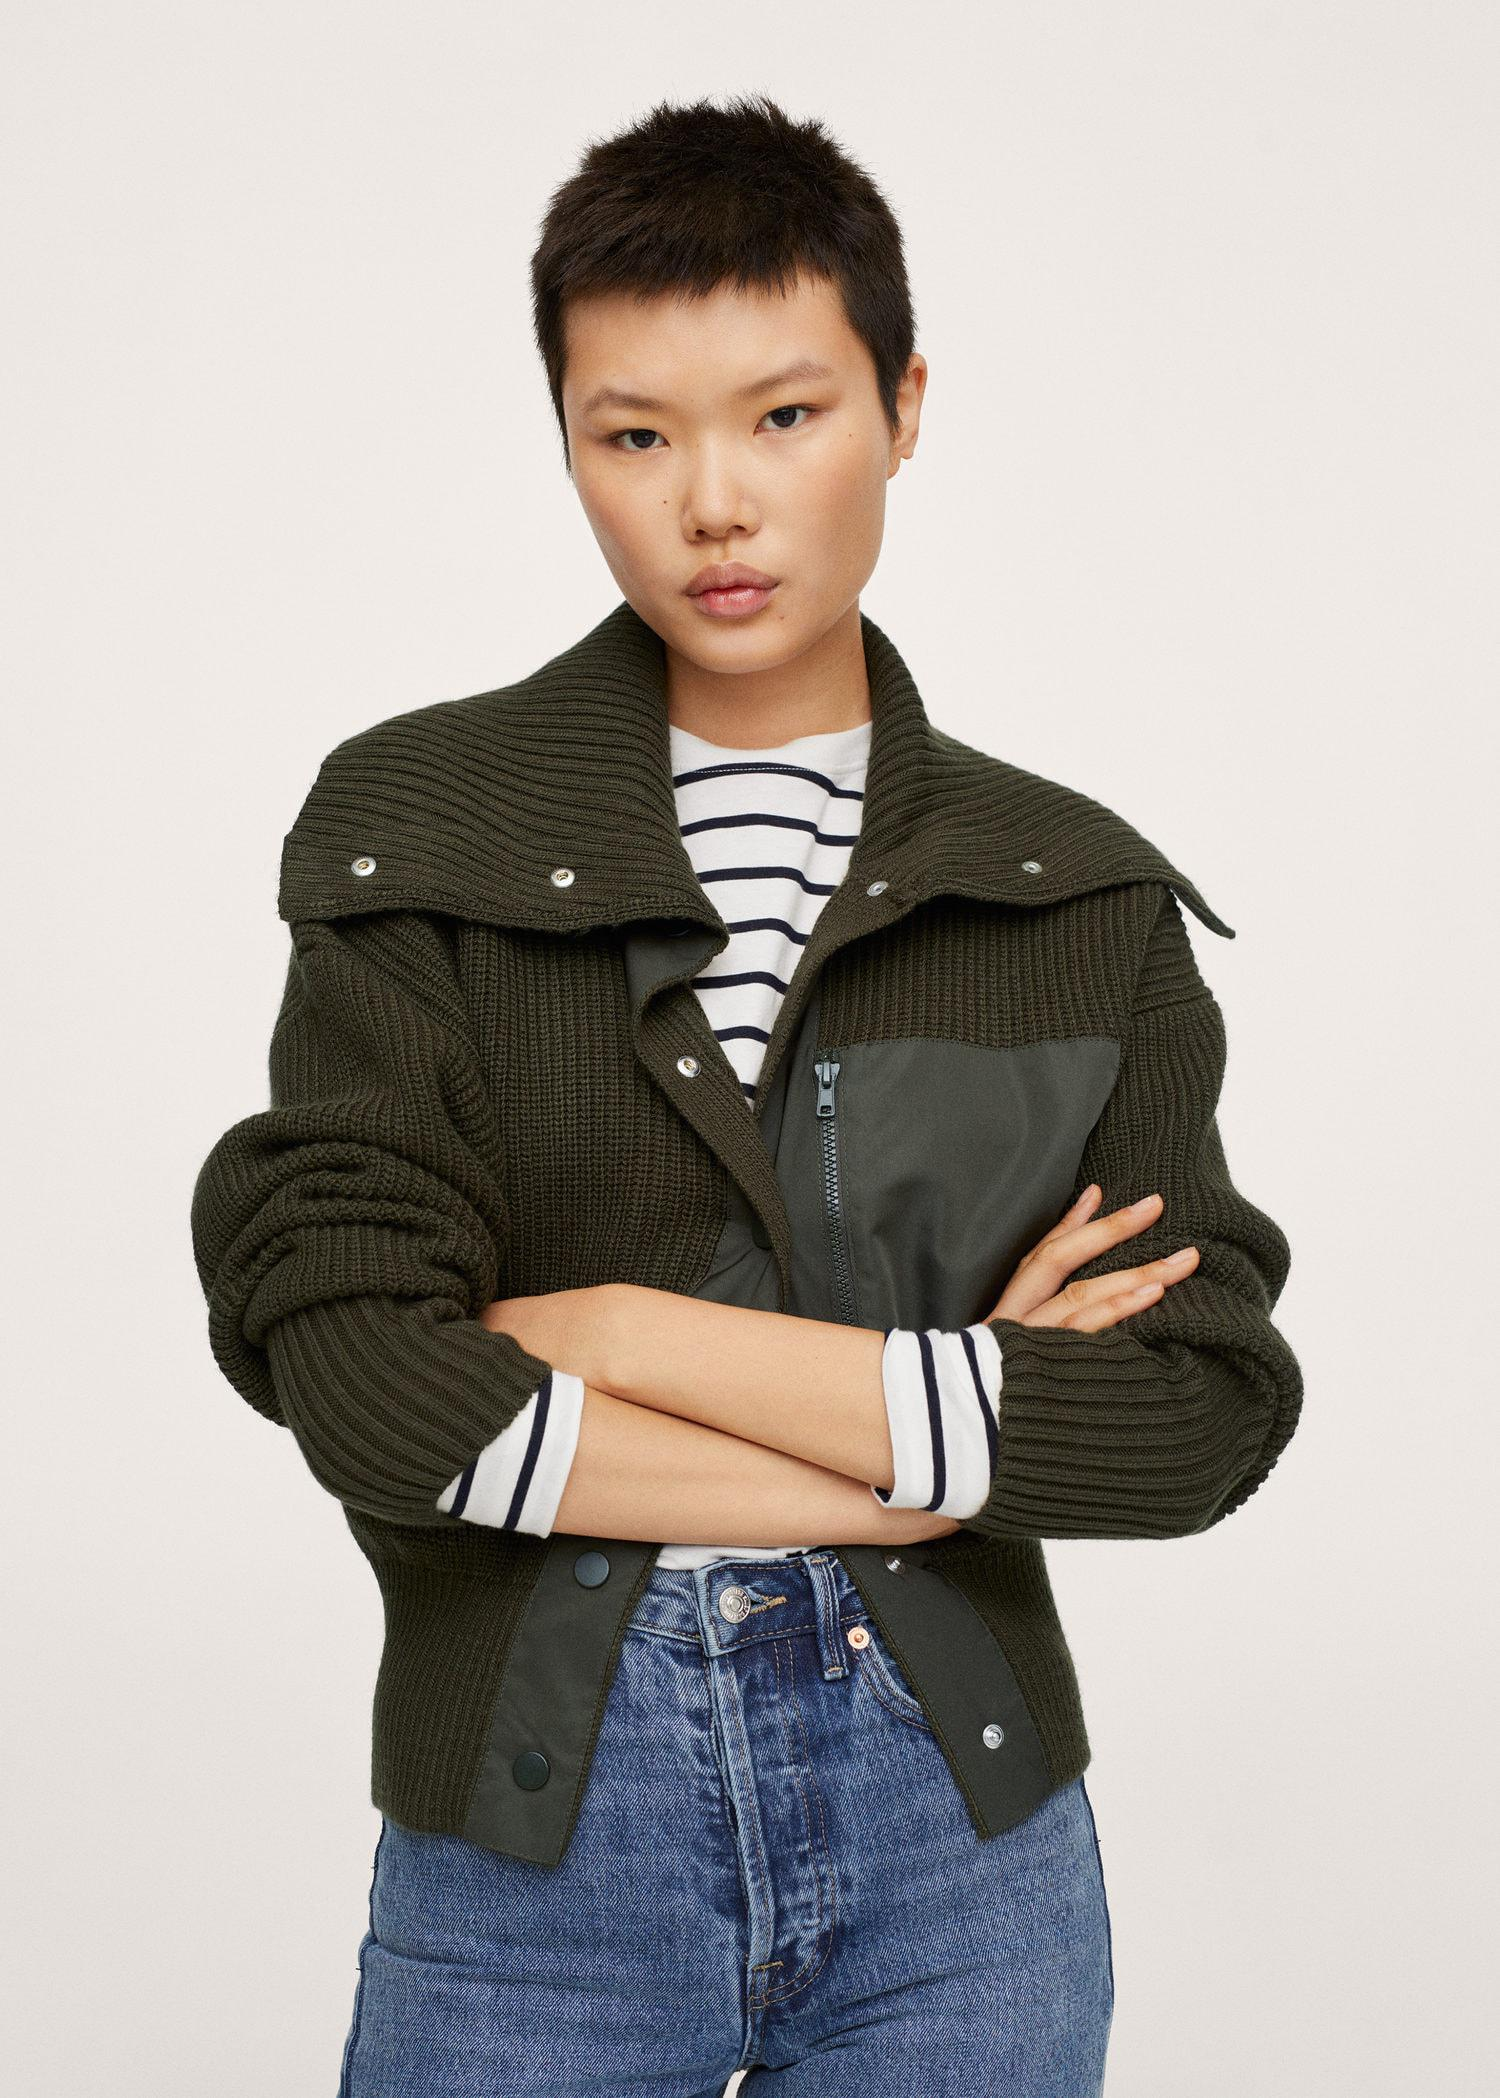 Combined knit jacket